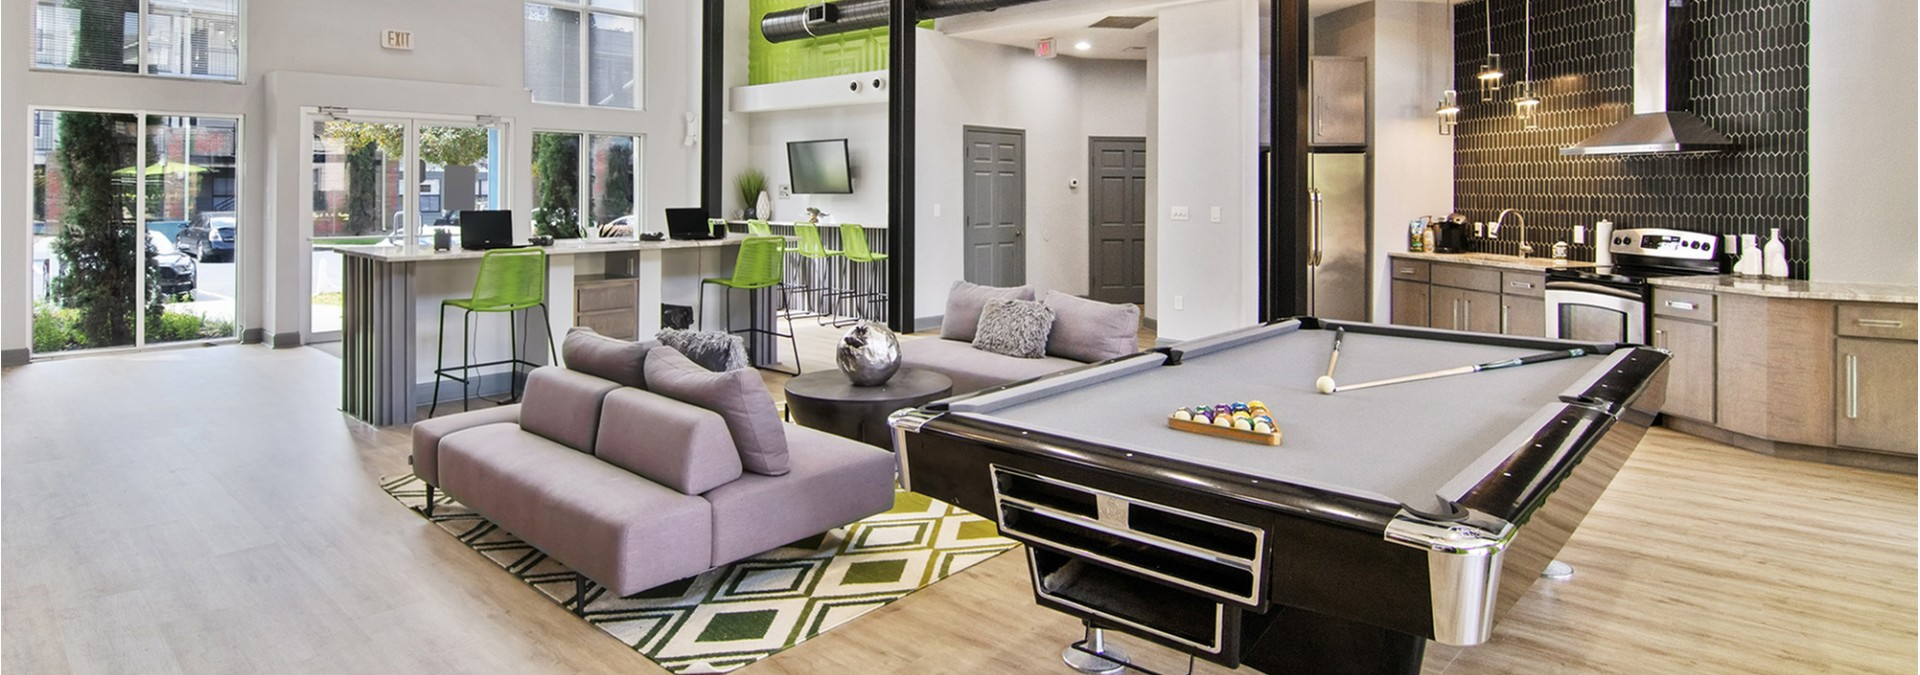 Resident Pool Table | Student Apartments Near FSU | The Social 2700 Student Spaces